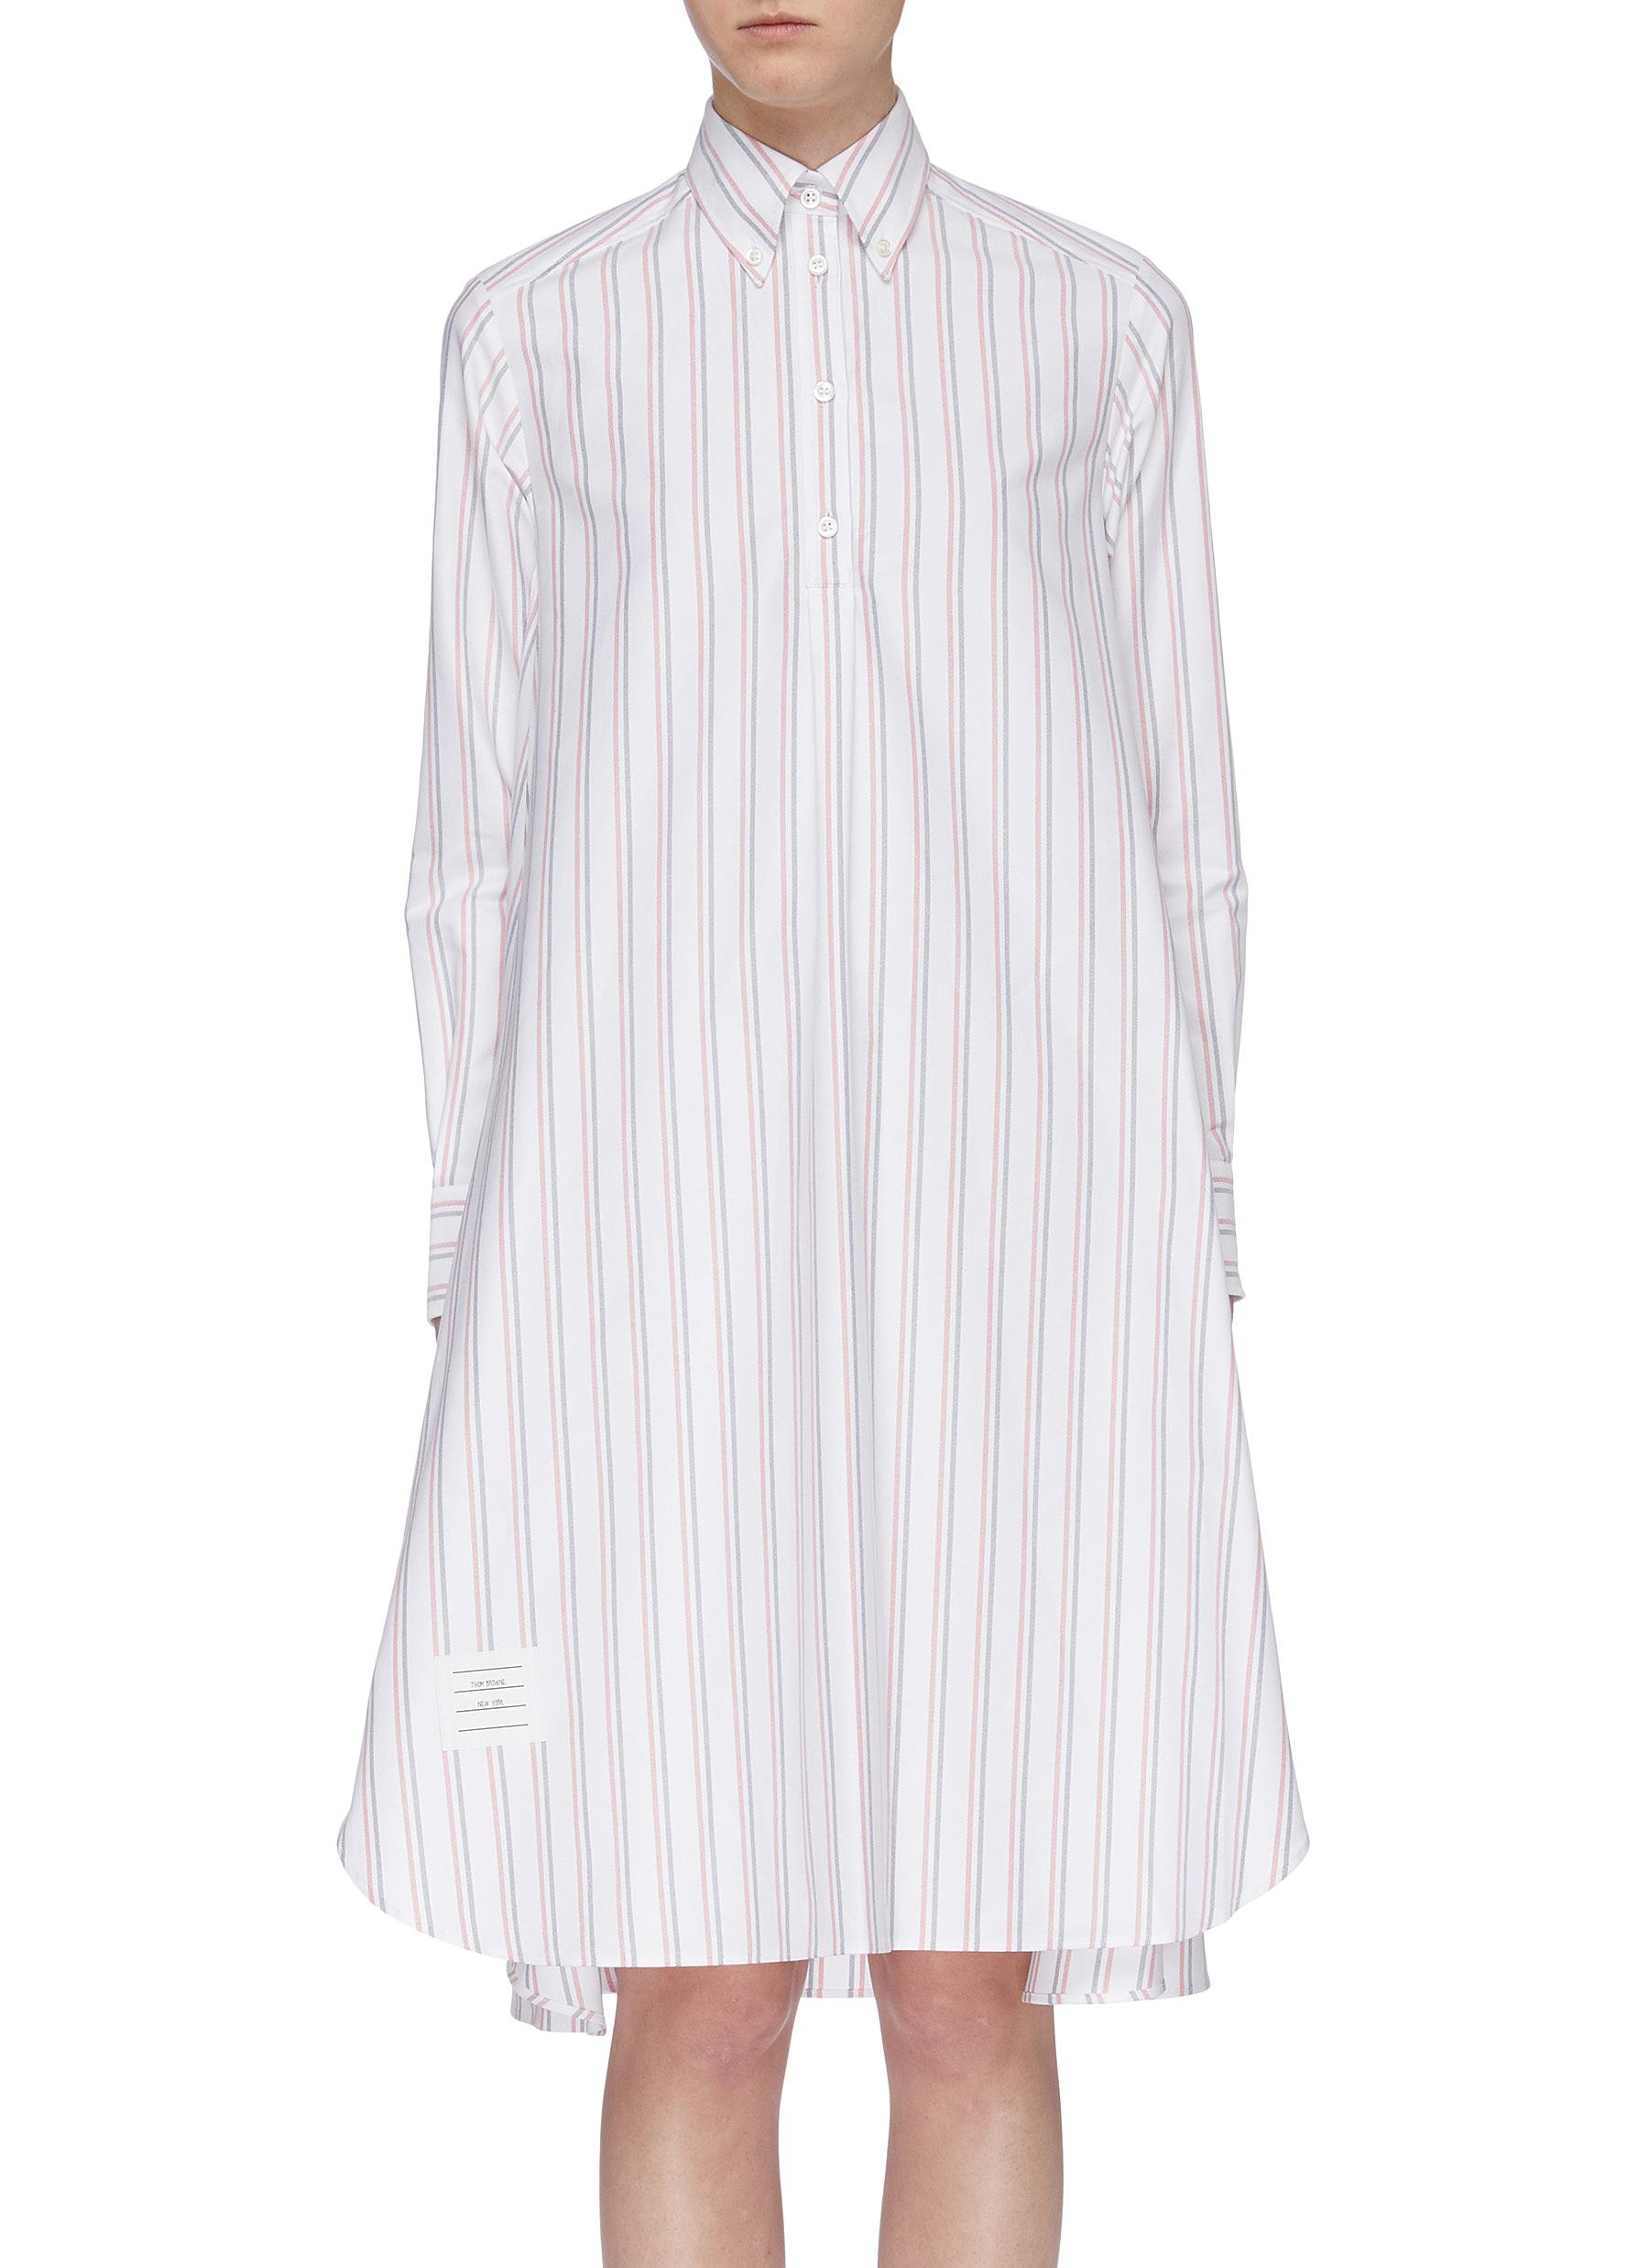 Half-button placket flared stripe Oxford shirt dress by Thom Browne